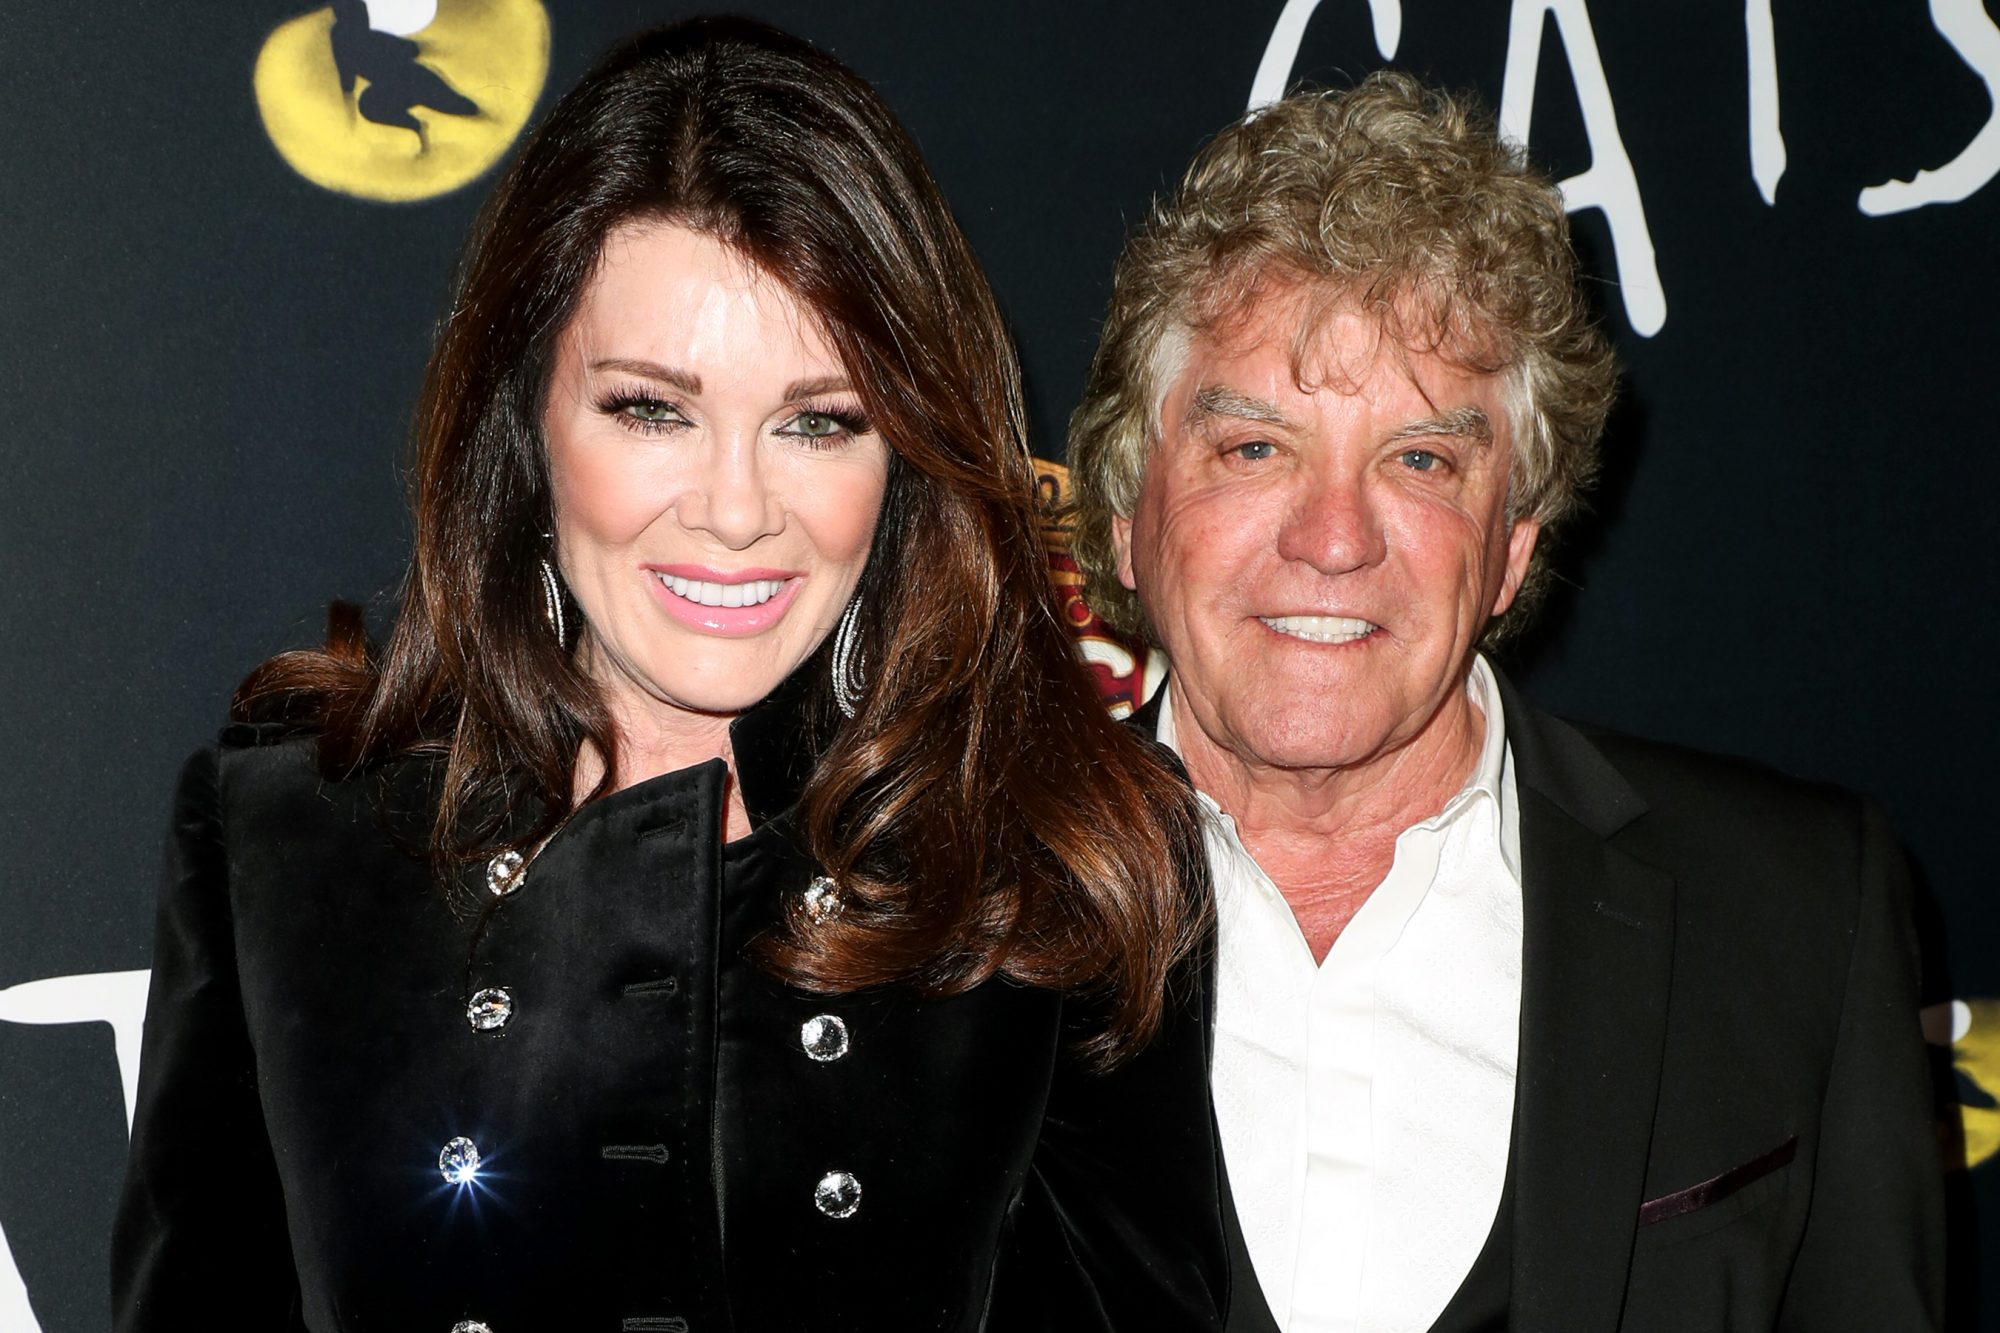 Lisa Vanderpump-Todd and Ken Todd